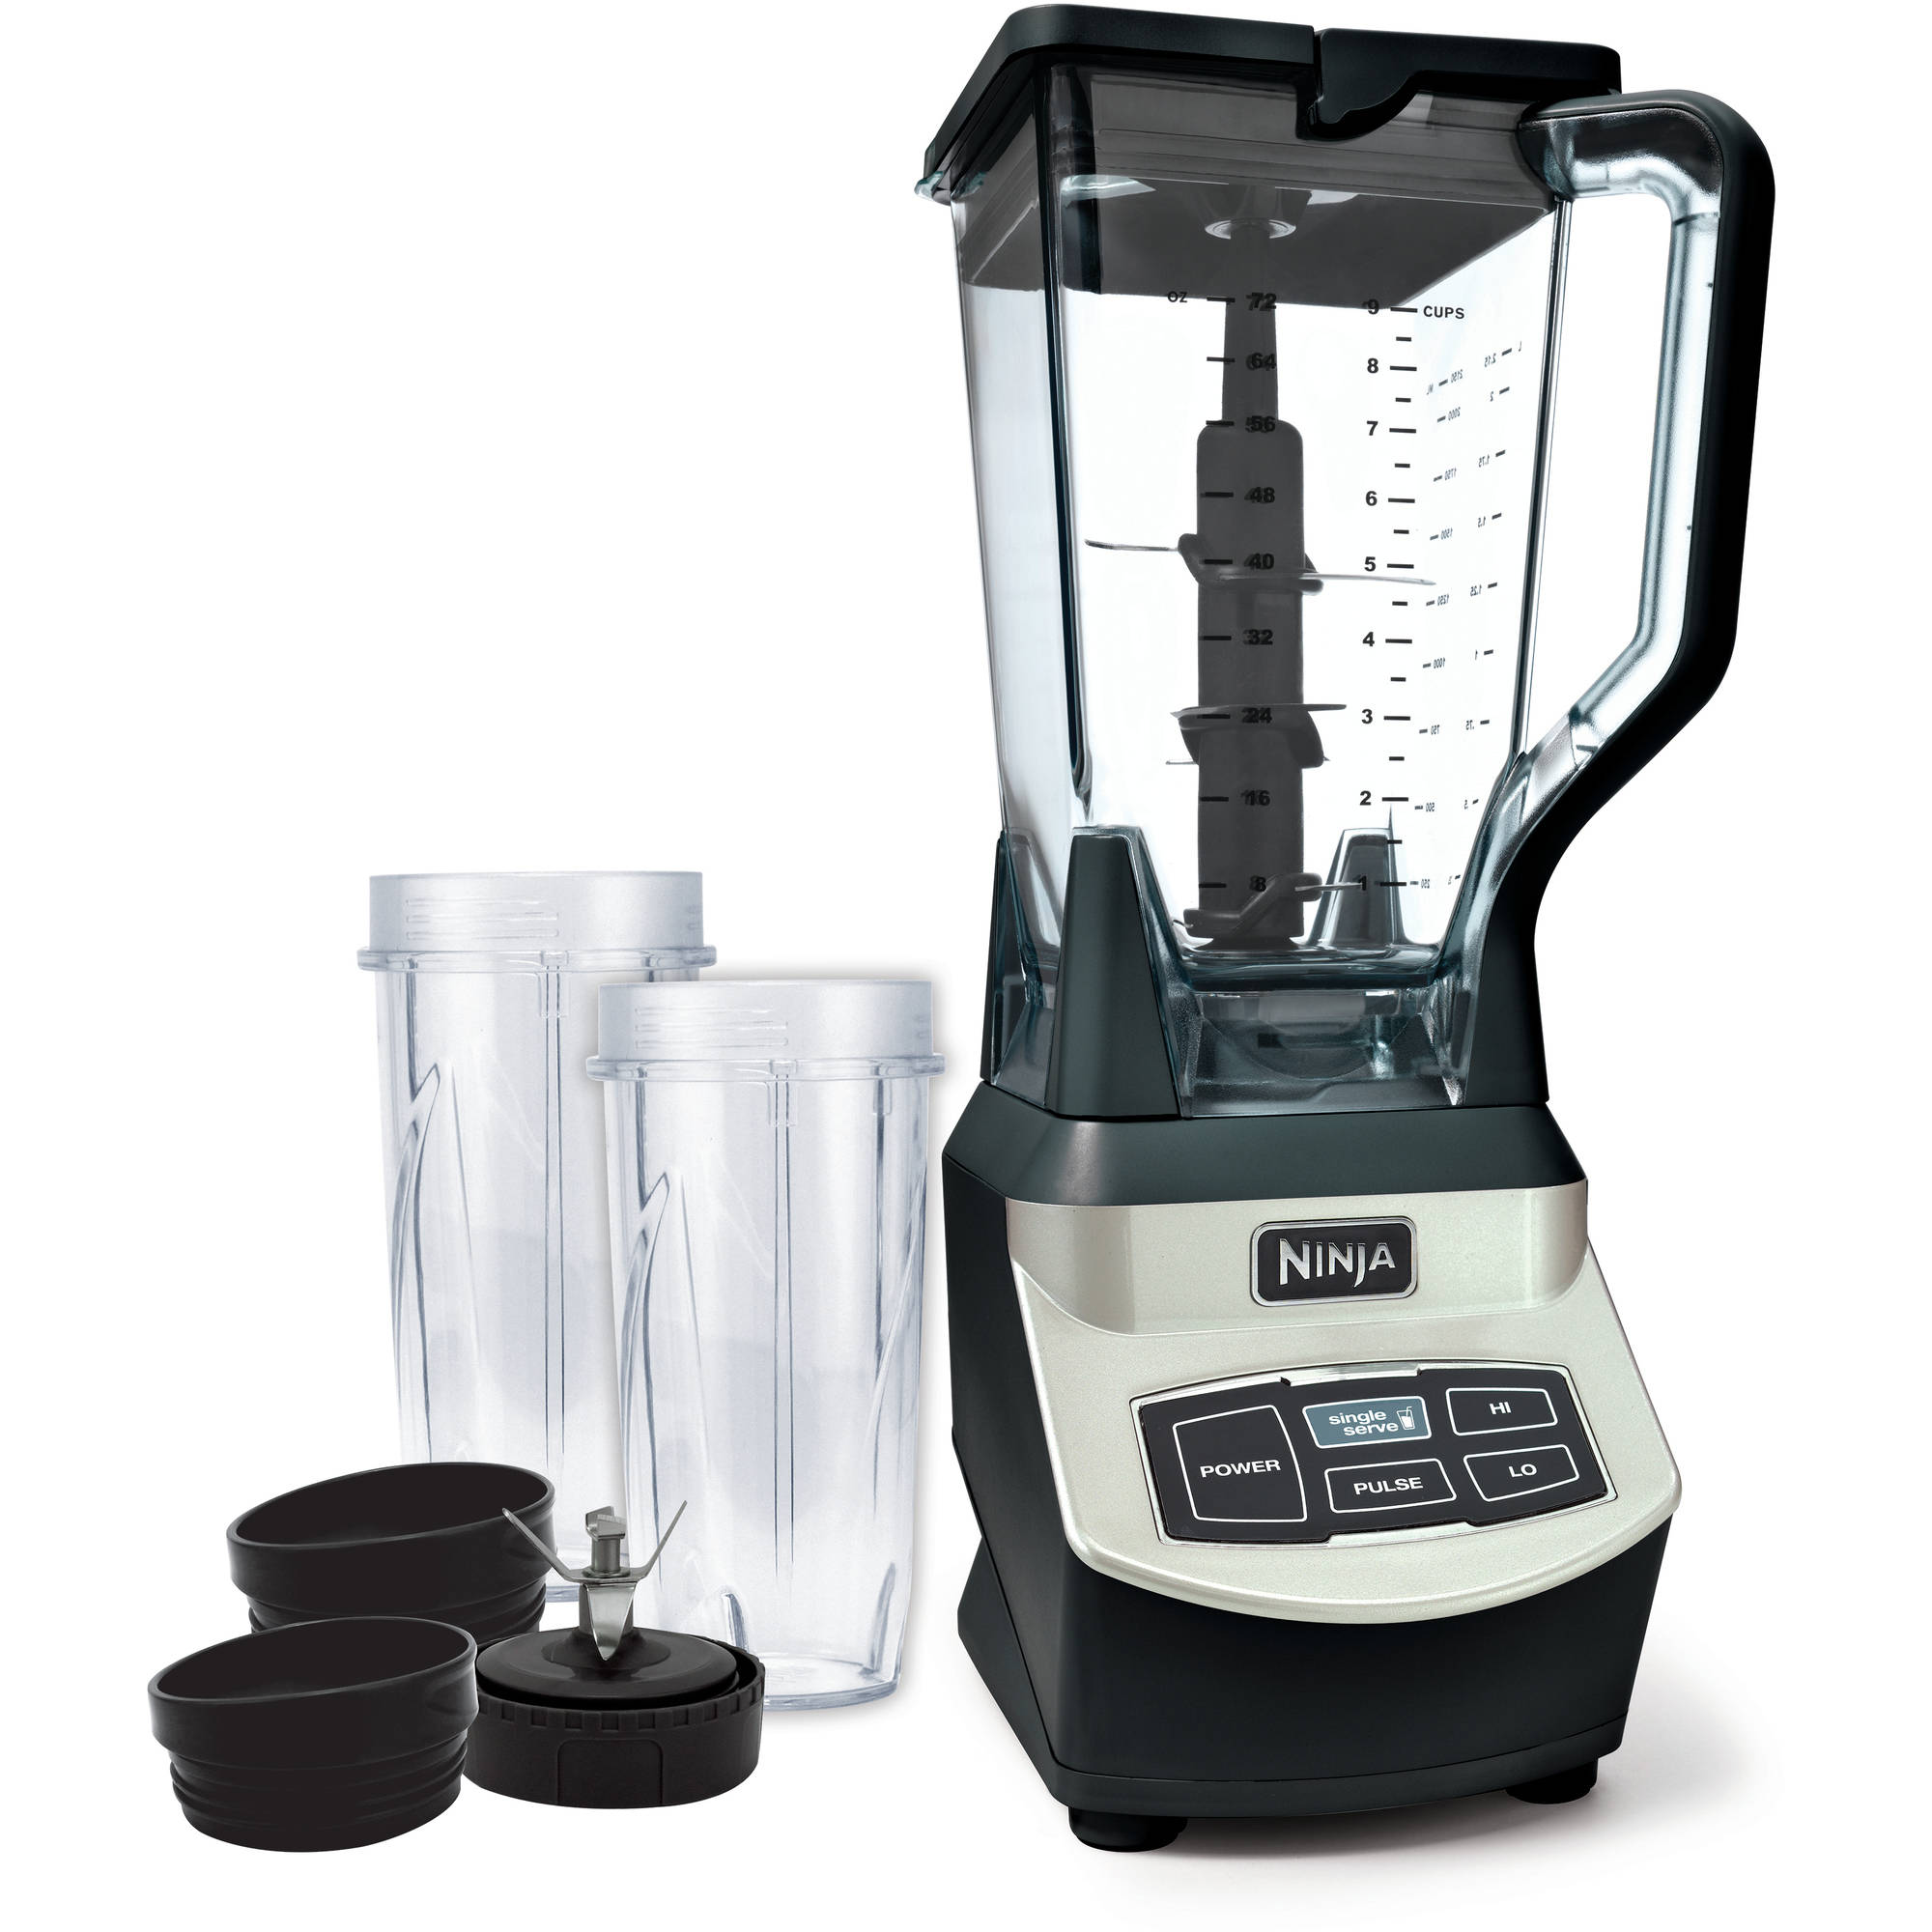 Ninja Professional Blender with Single Serve, Black/Chrome, BL660WM